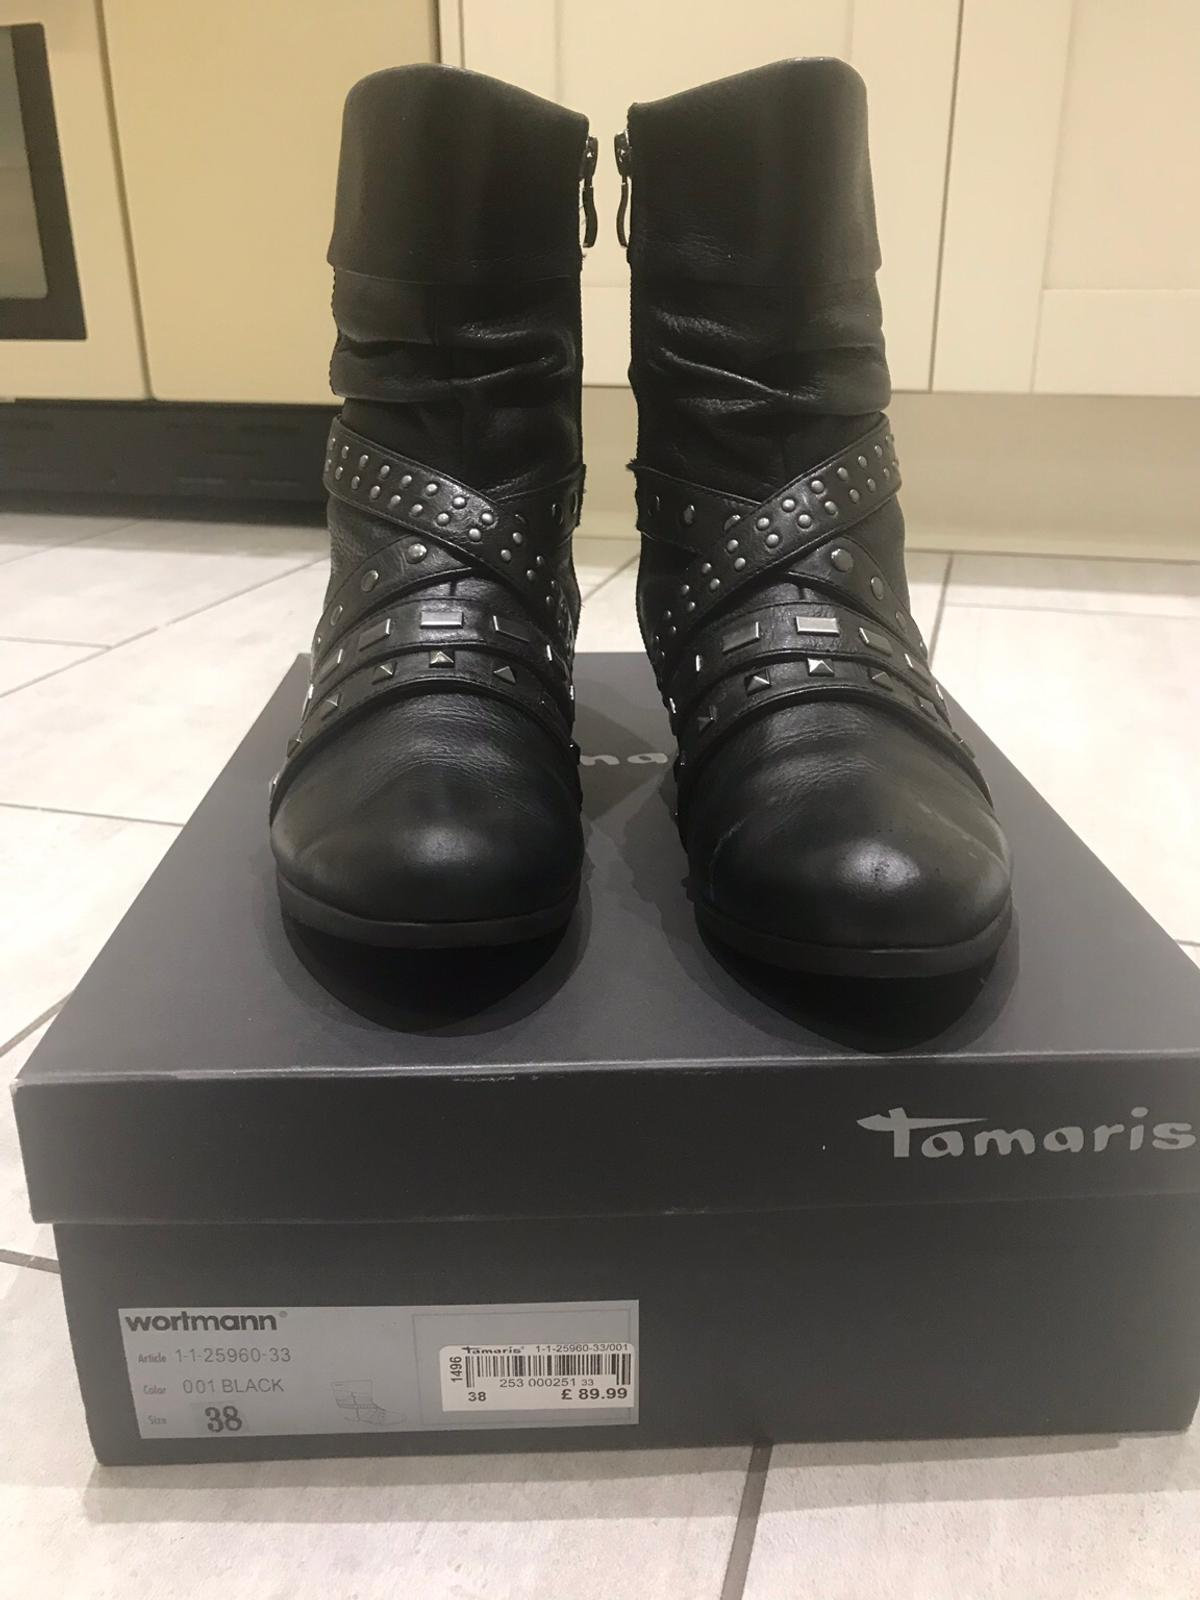 Tamaris Stud Boots in s30 Sheffield for £20.00 for sale | Shpock